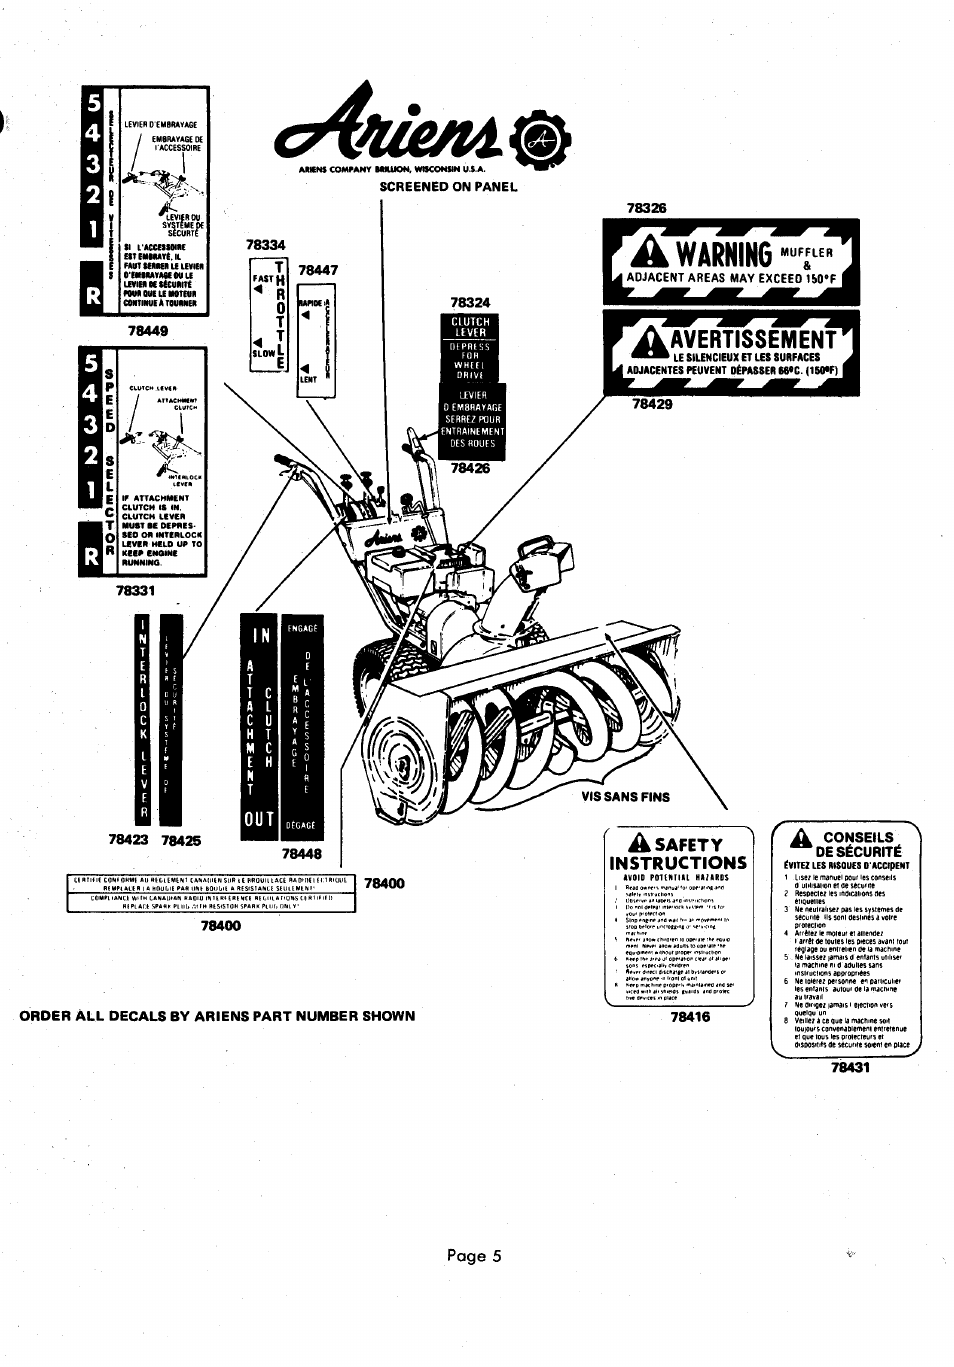 Page 5, Order all decals by ariens part number shown